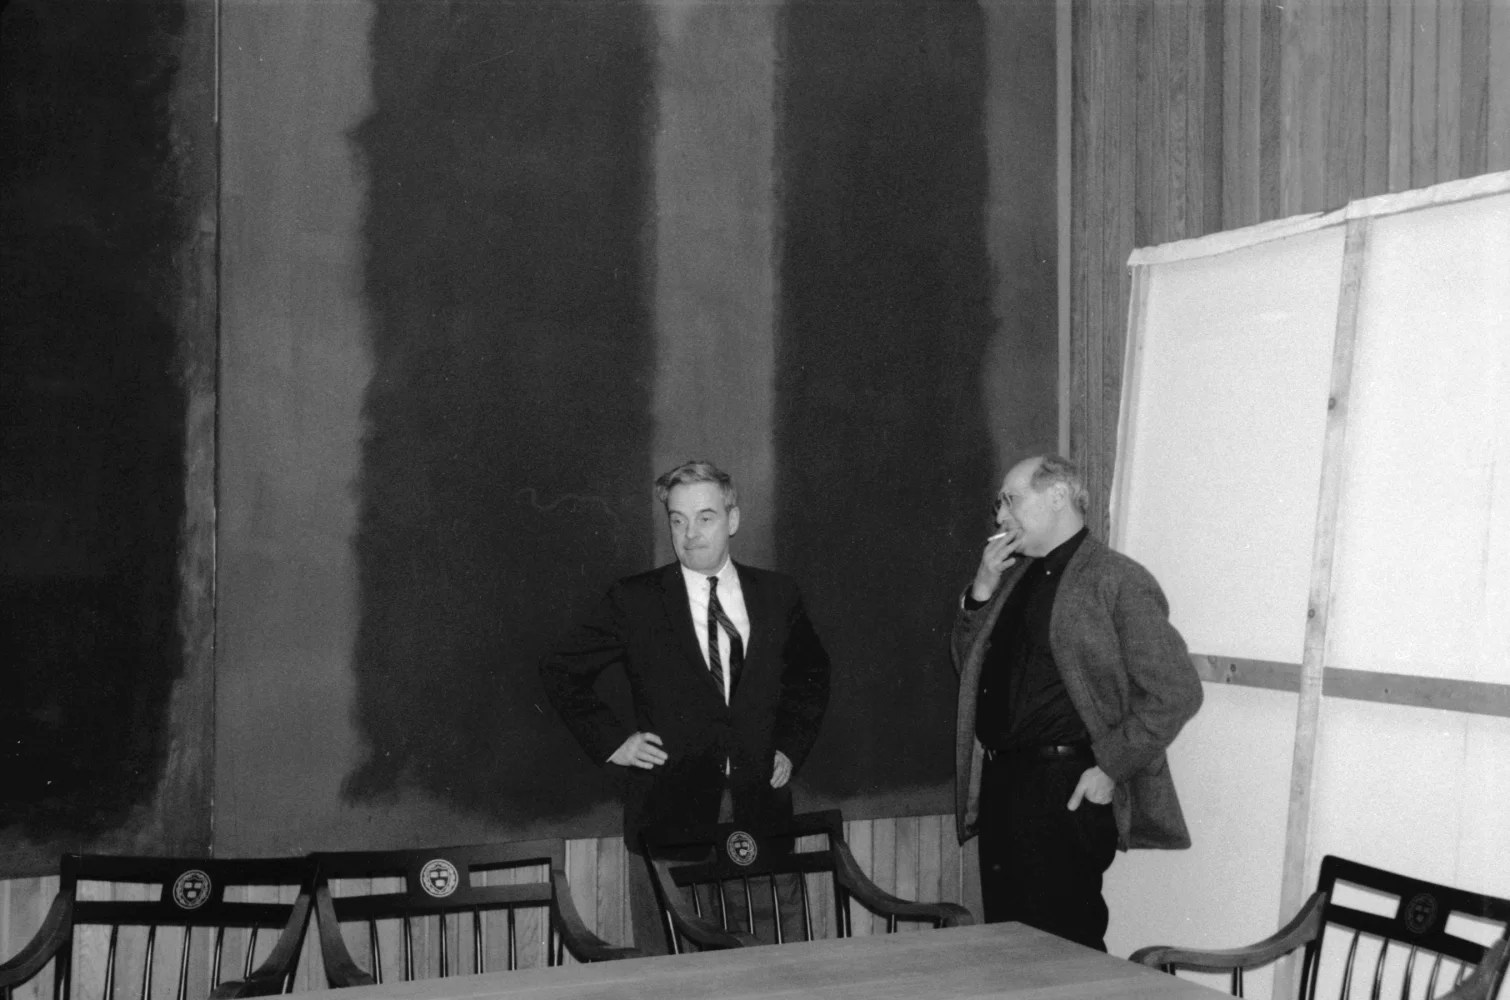 "John Coolidge, former director of the Fogg Museum, and Mark Rothko (right) in front of ""Panel Two"" and ""Panel Three"" of the Harvard murals on the tenth floor of Harvard's Holyoke Center, 1963. © 2009 Kate Rothko Prizel and Christopher Rothko / Artists Rights Society (ARS), New York. Elizabeth H. Jones, ©President and Fellows of Harvard College"